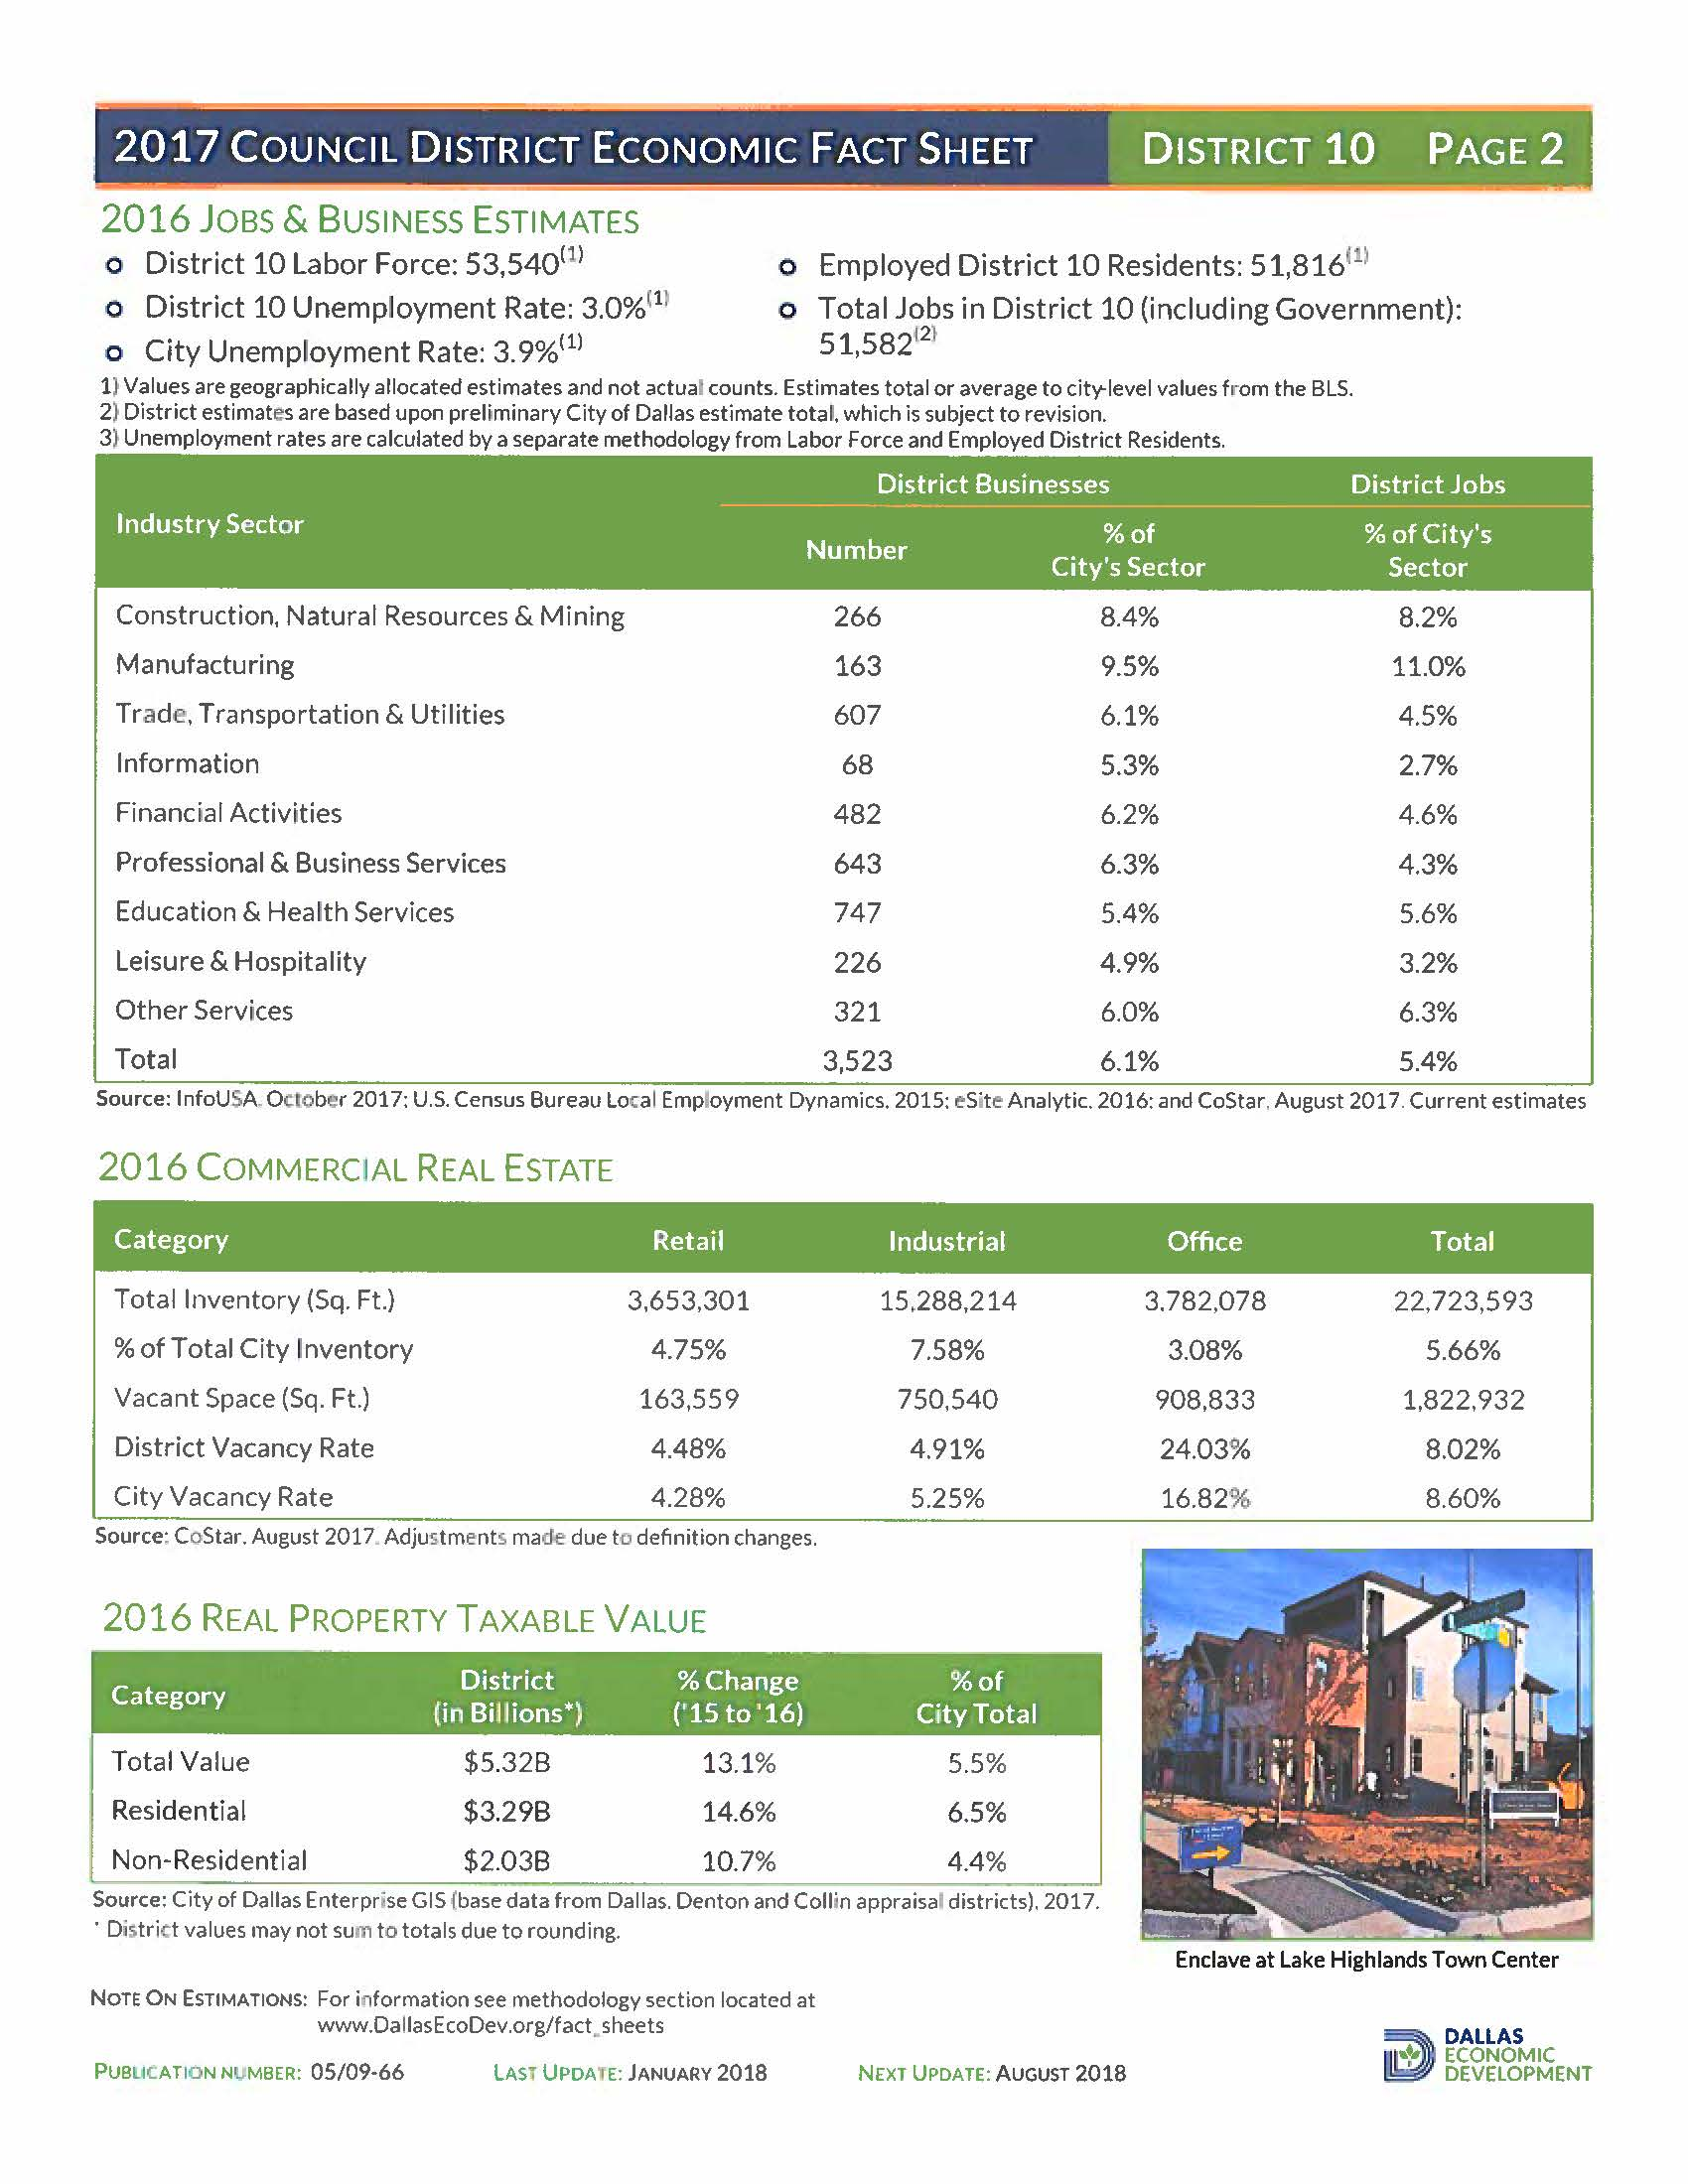 2017 Council District Economic Fact Sheet_Page_2.jpg